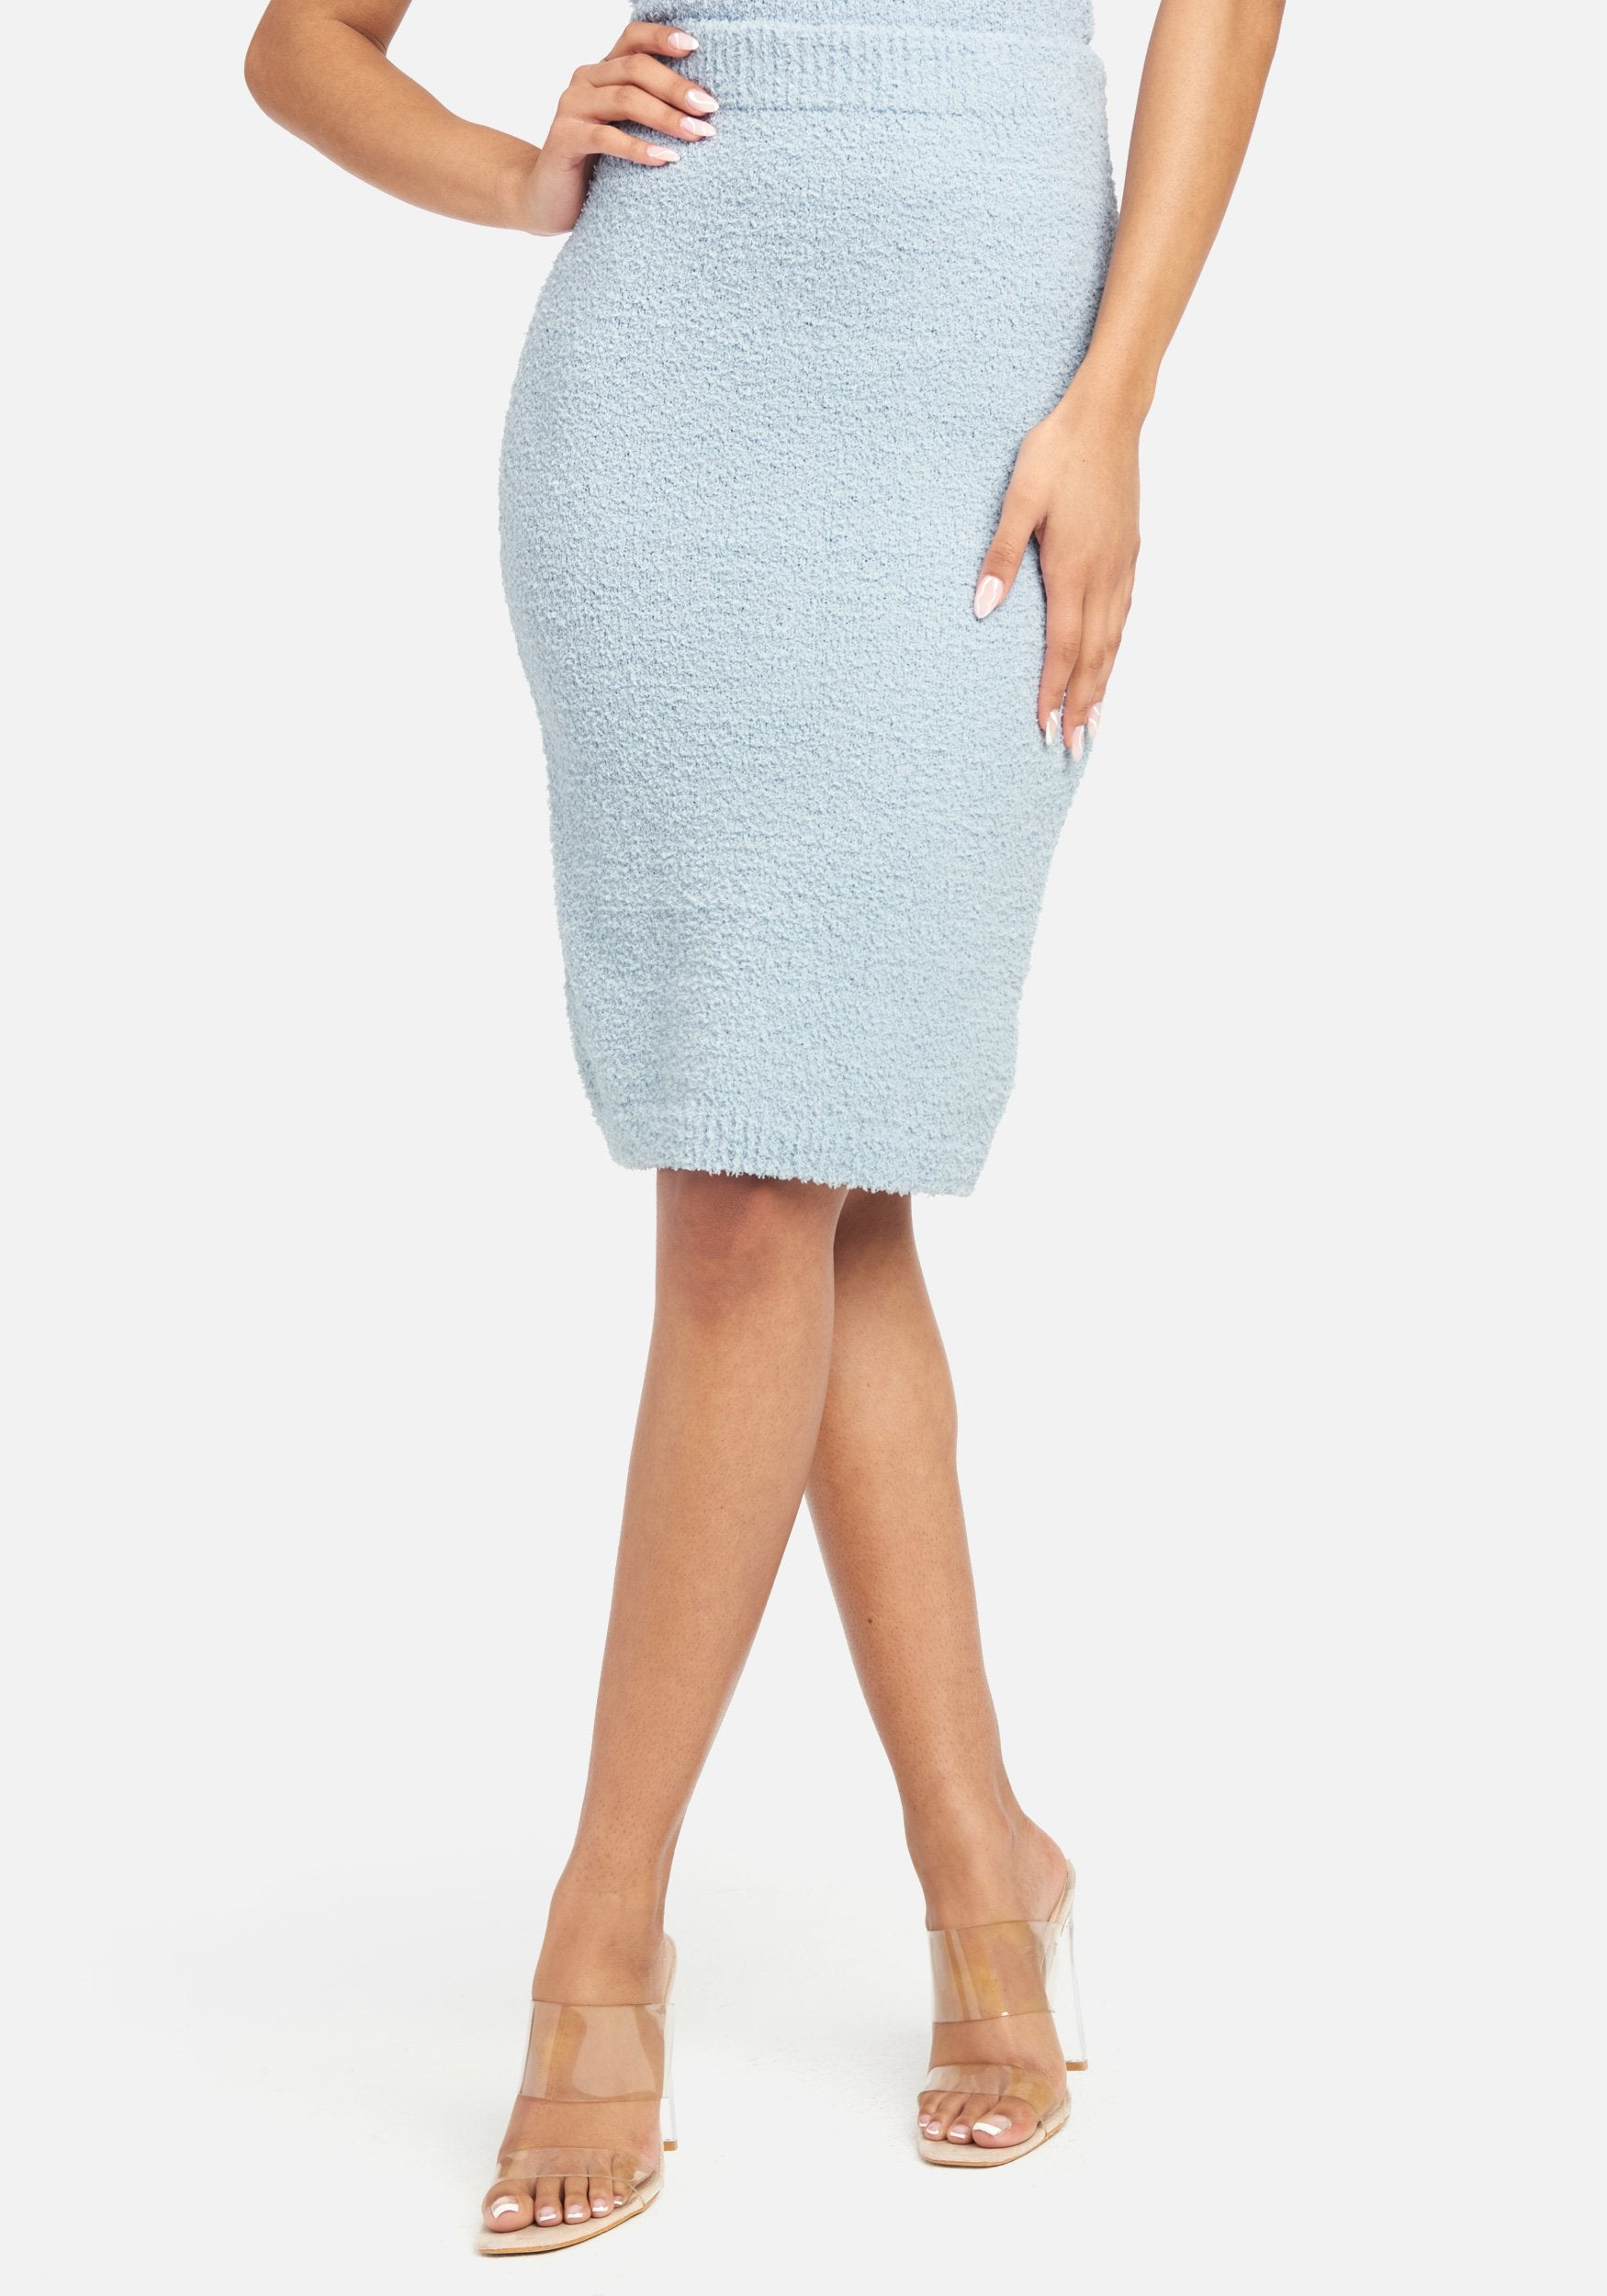 Bebe Women's Chenille Knit Skirt, Size XS in Ice Blue Polyester